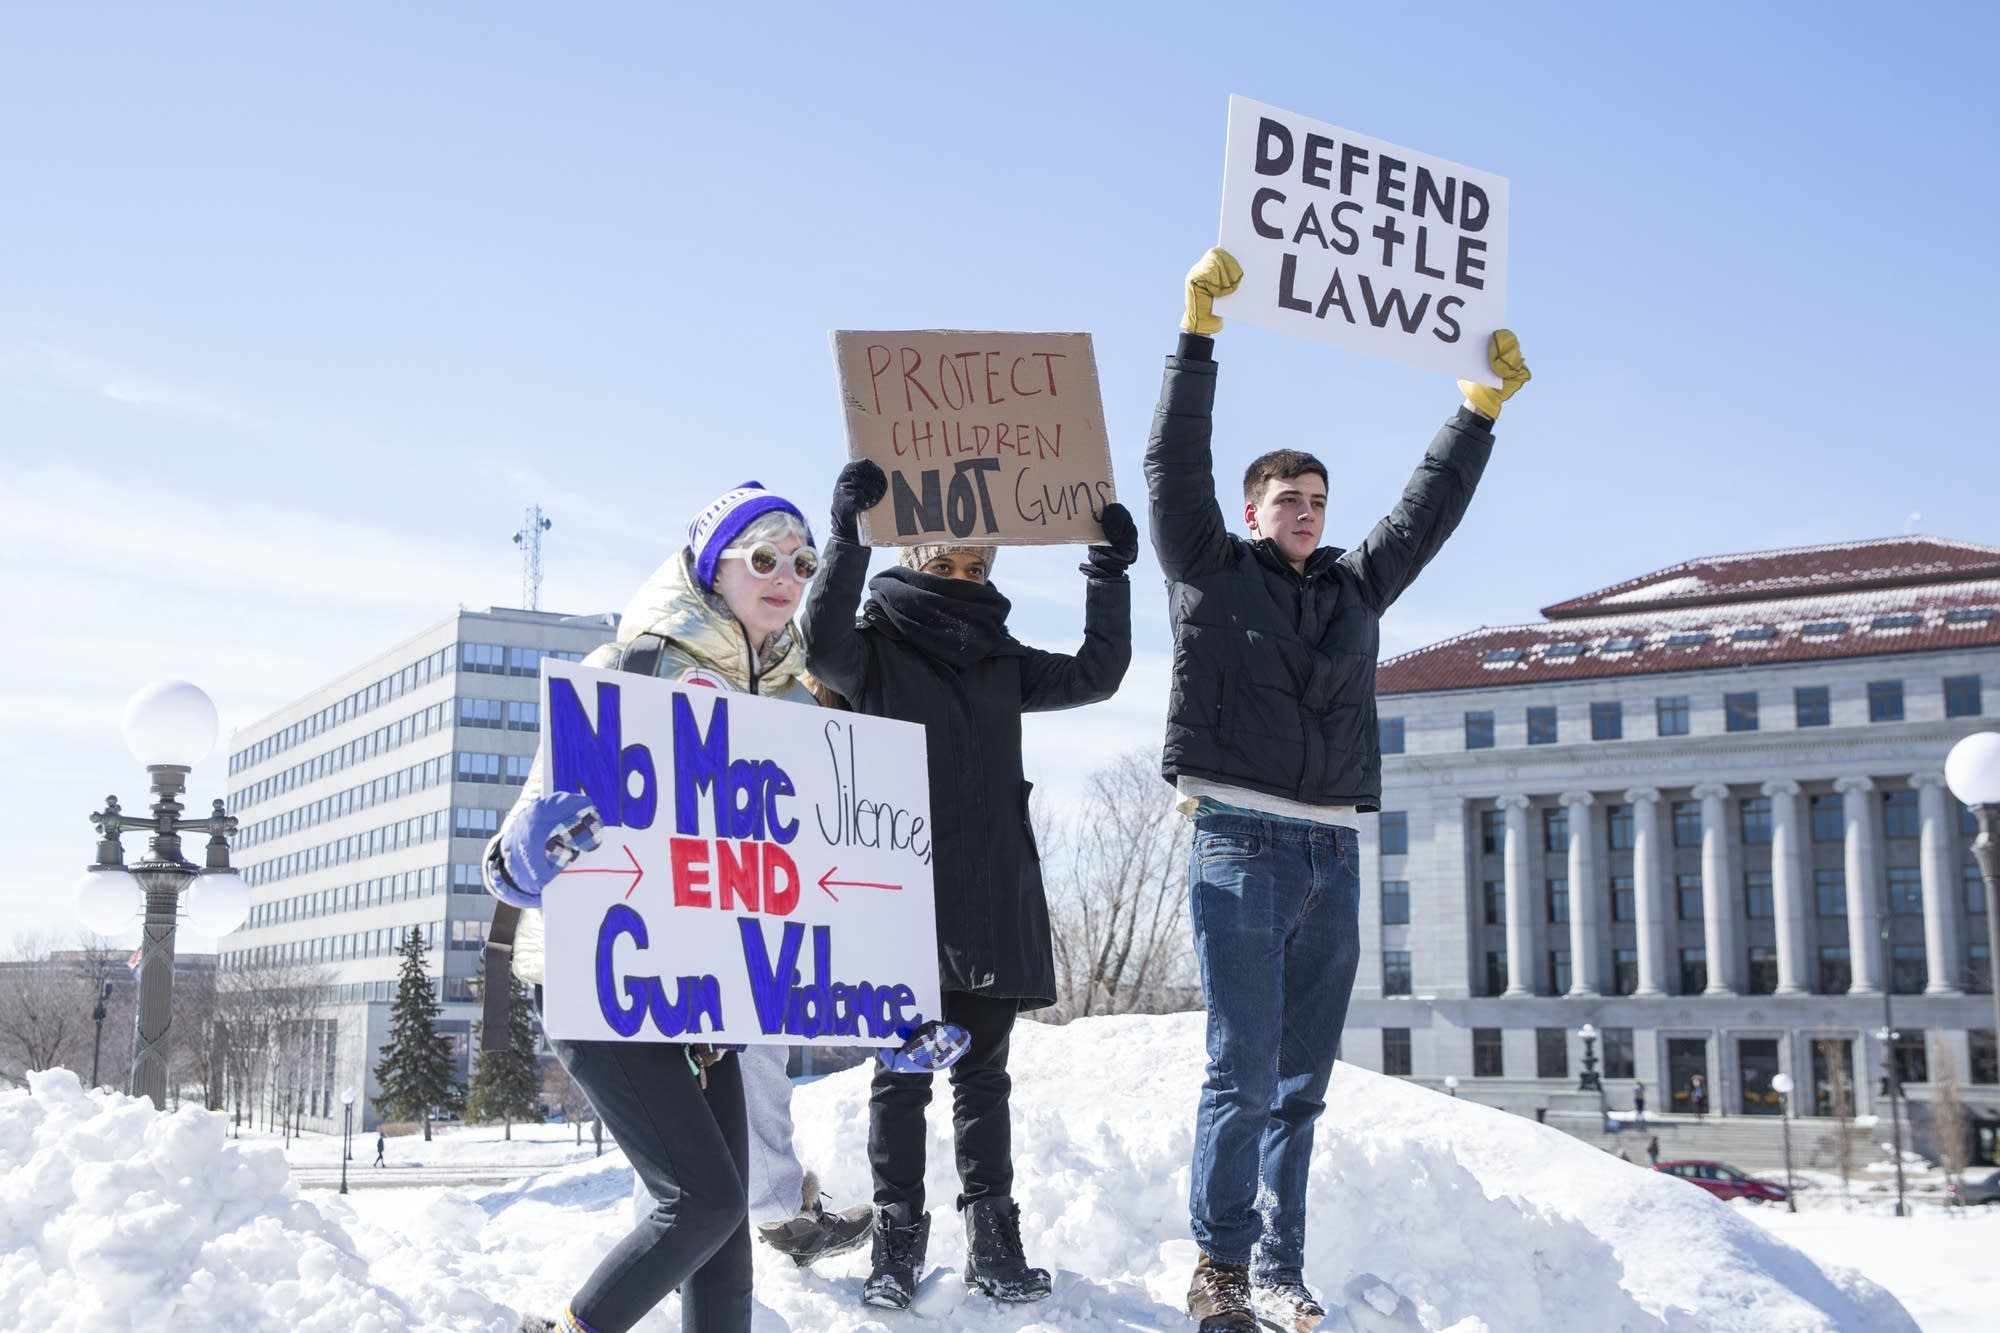 Students stand on a snow bank holding signs